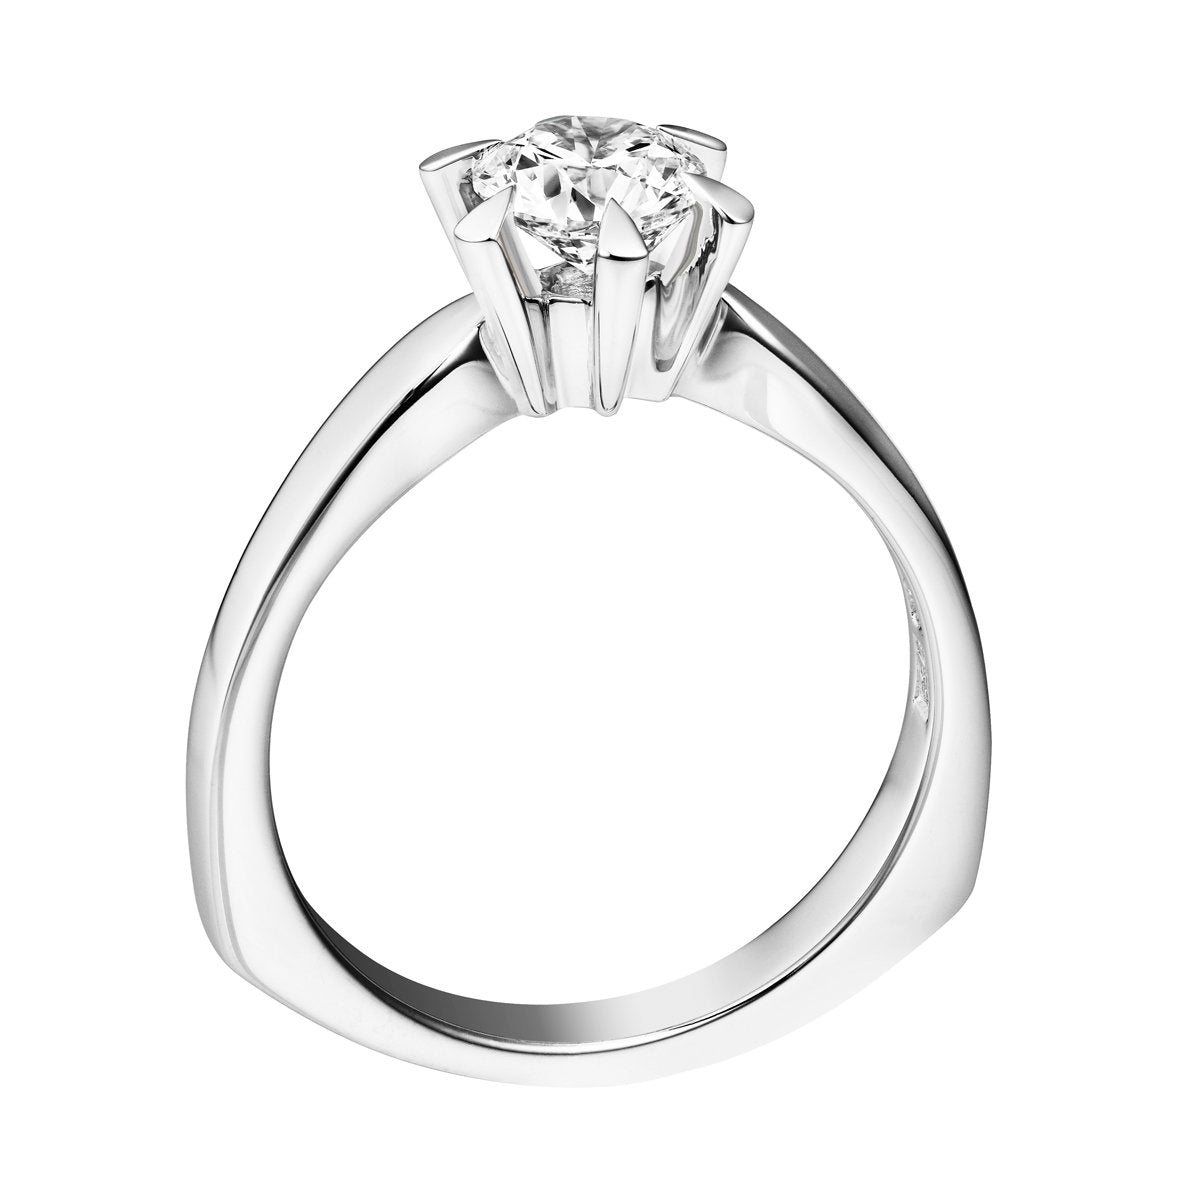 Eleni diamond solitaire ring